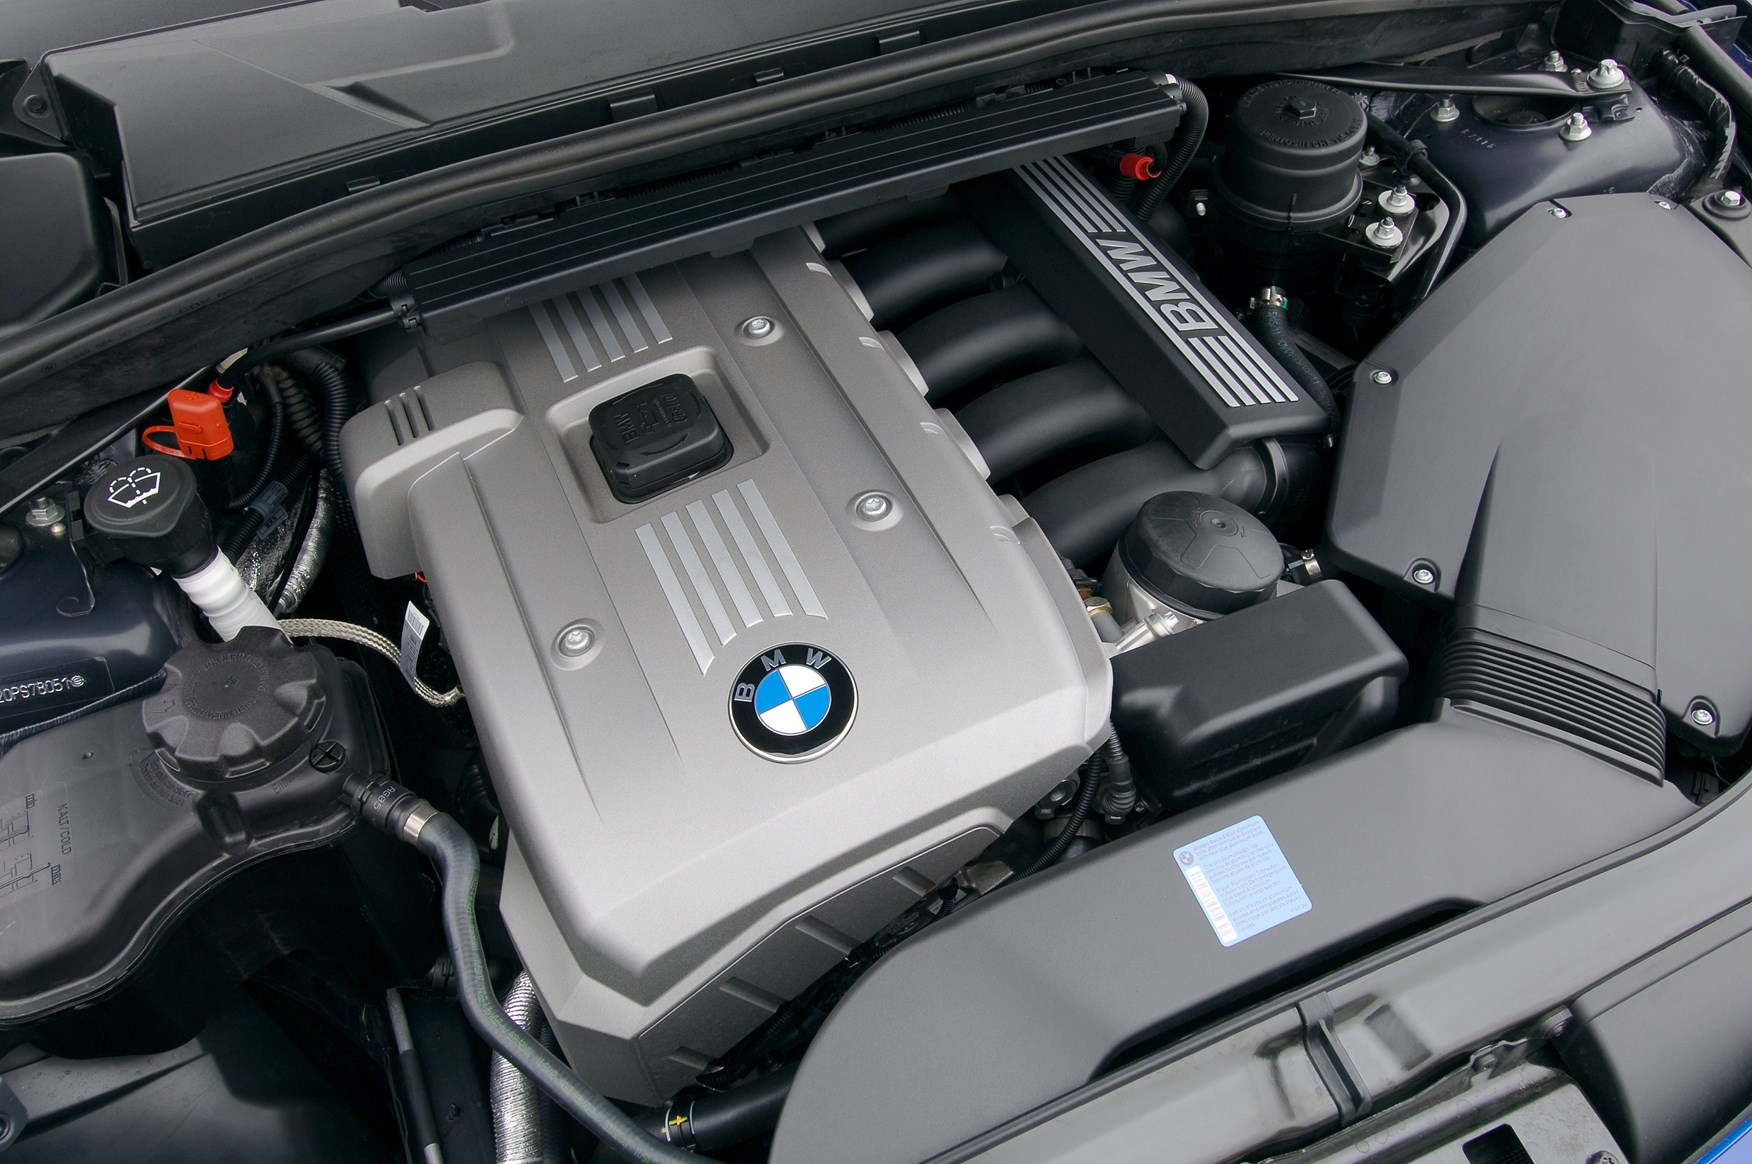 Used BMW 1-Series Hatchback (2004 - 2011) Review   Parkers